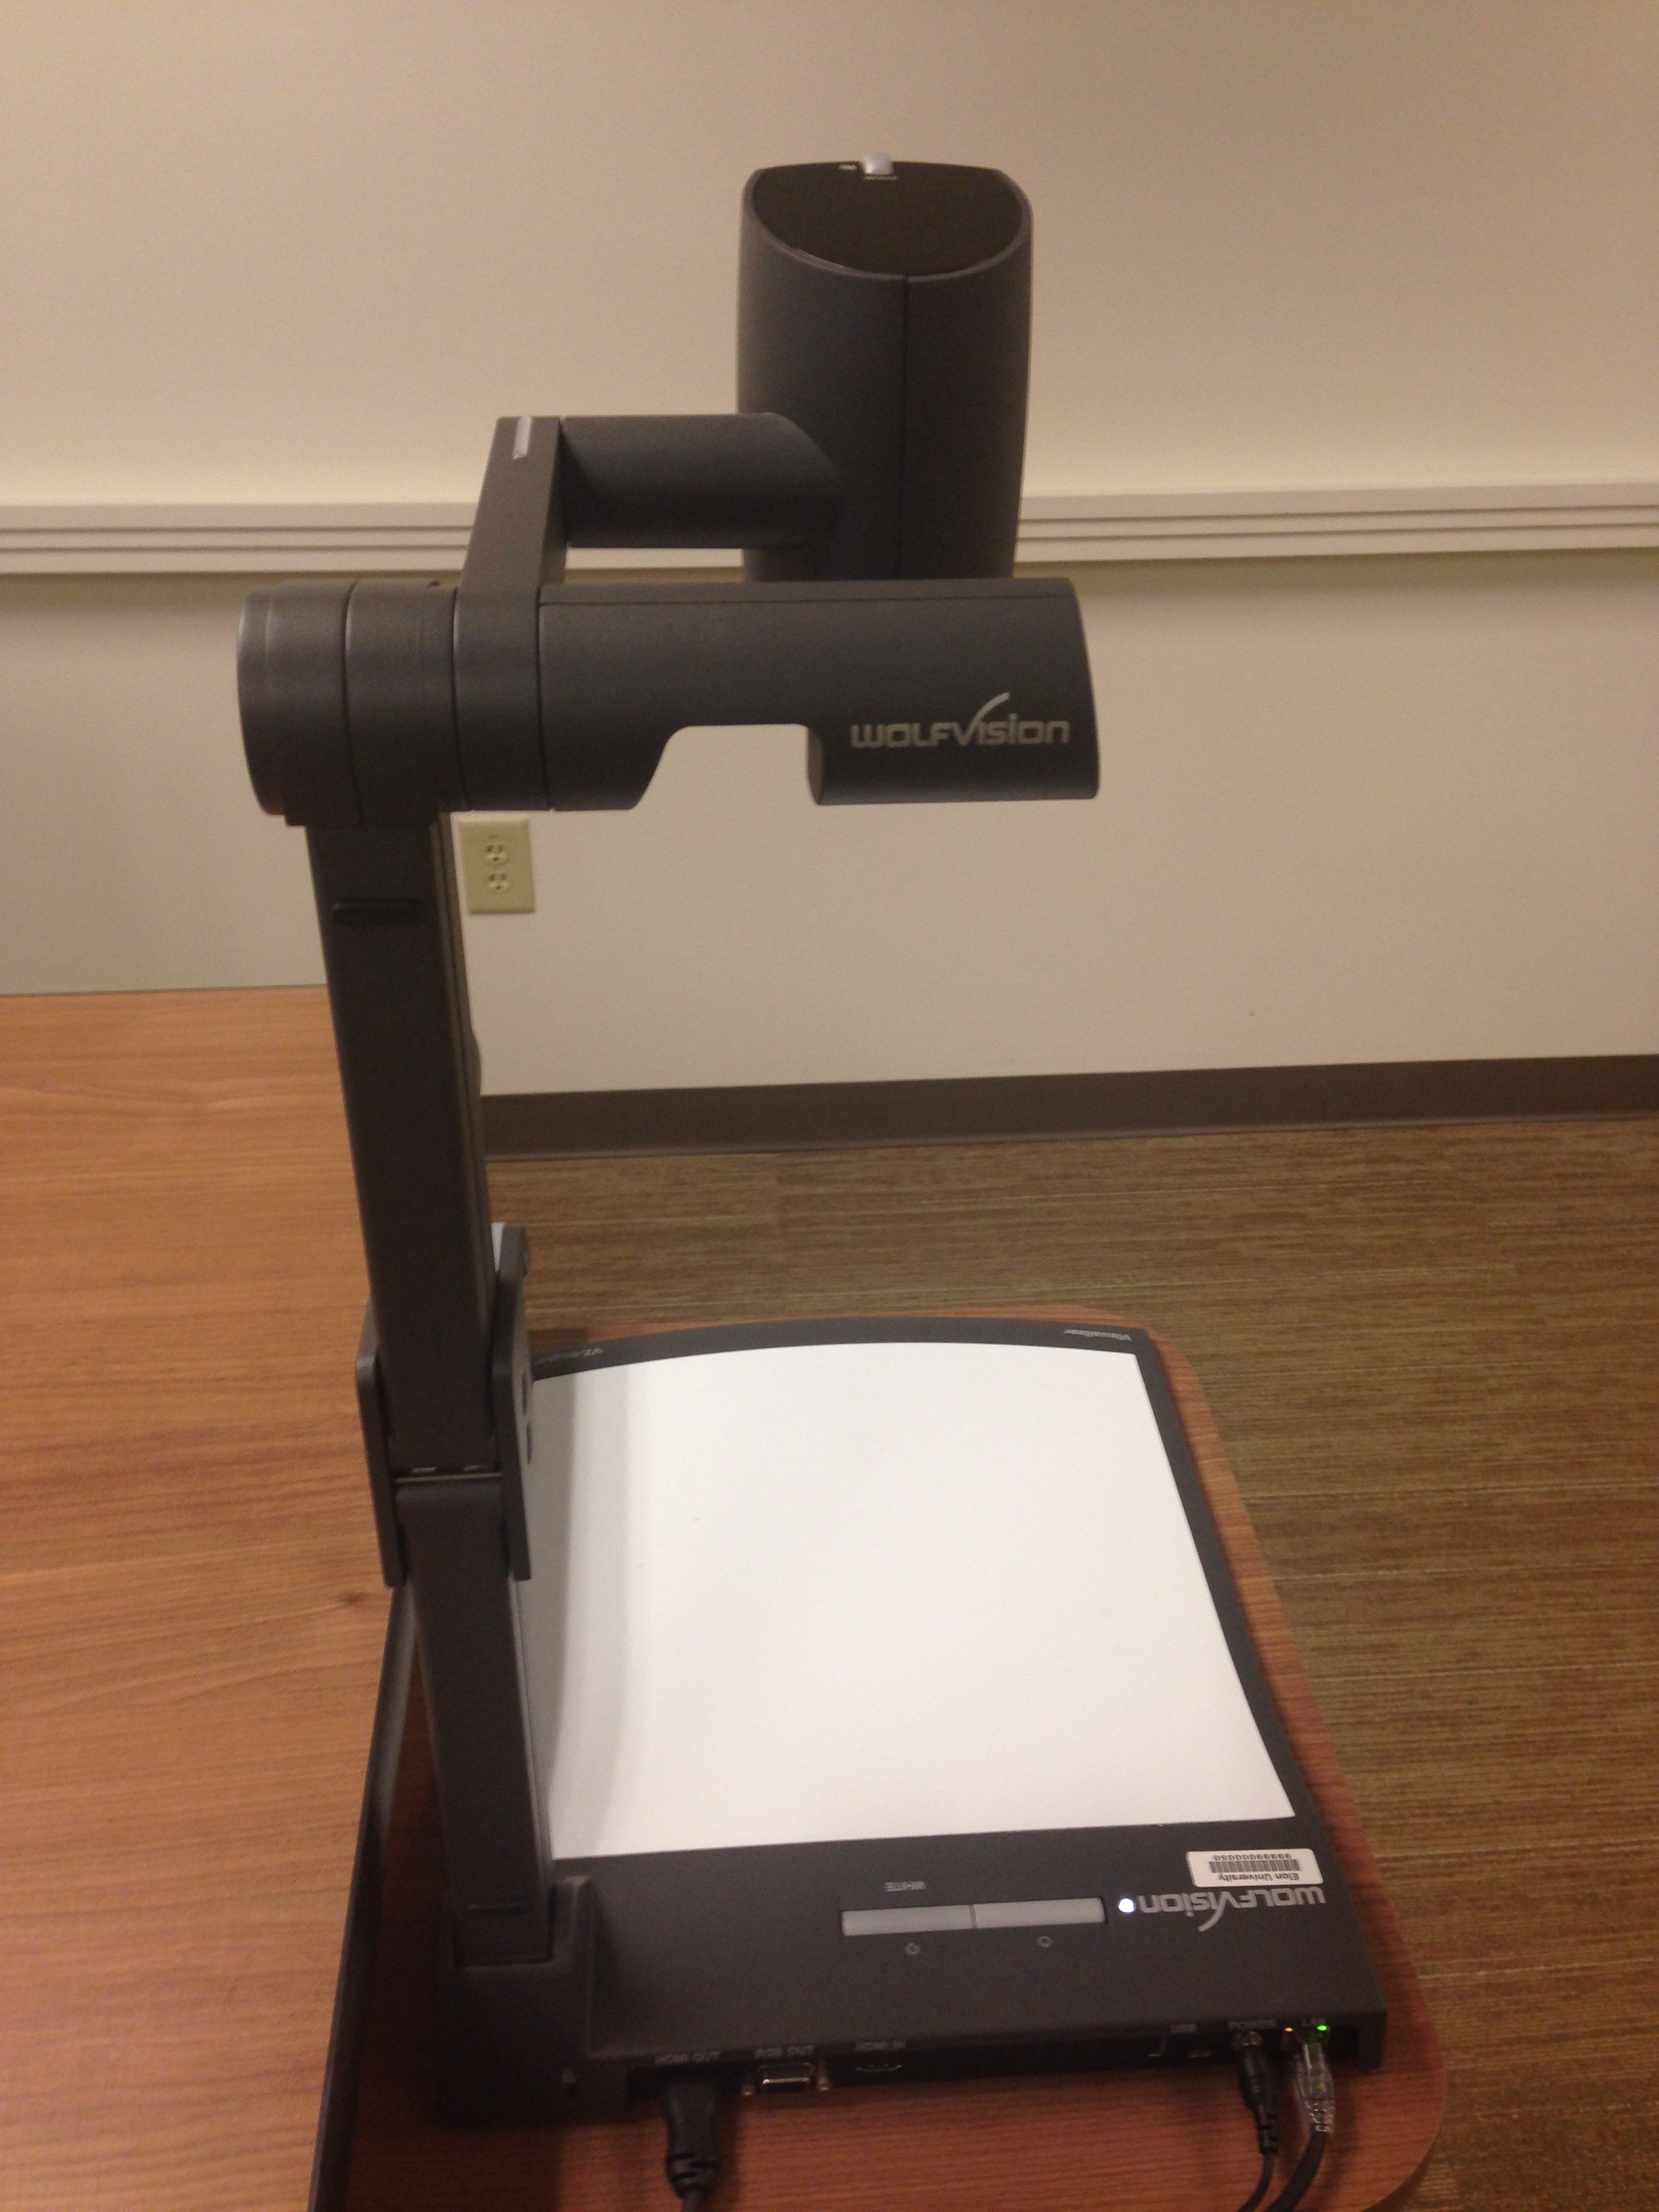 A picture of the WolfVision Document Camera.